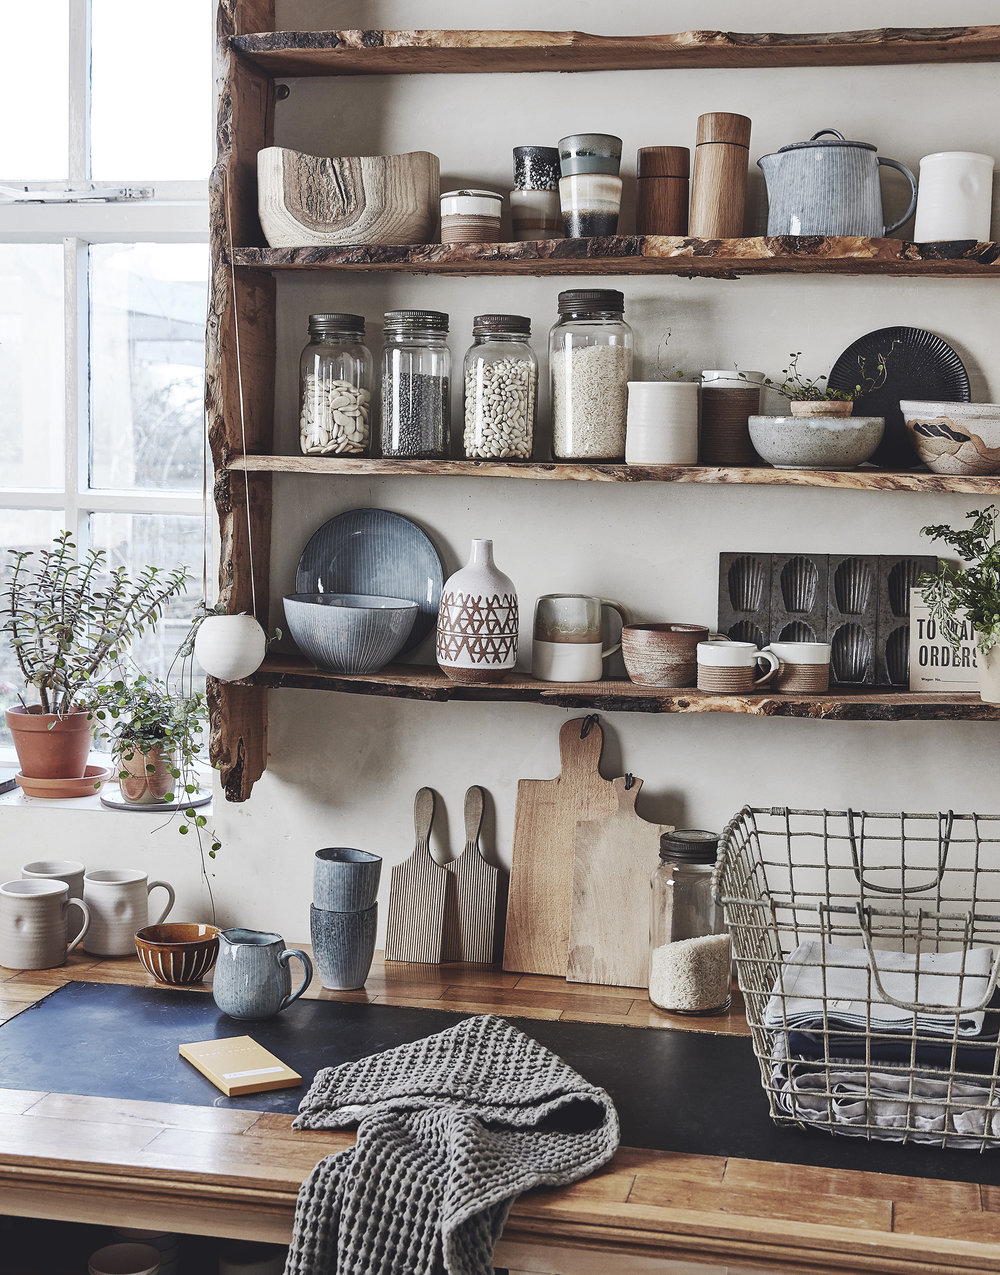 TOP SHELF: Items available from    Folk Interiors   ; 2nd SHELF: Vintage kilner jars –    The Old Potato Store   ; Snow tall beaker –    Room 356   ; Rebecca Morris Bowls –    Object Style   ; BOTTOM SHELF: Broste Copenhagen pottery -    Folk Interiors   ; Rebecca Morris Pottery and espresso cups –    Object Style   ; Vintage Madelaine tin & old signage –    The Old Potato Store   ; WORKTOP: Vintage oyster basket, chopping boards and butter pats -    The Old Potato Store   ; Blue Broste Copenhagen jug and beakers –    Folk Interiors   ; Waffle Tea towel –    Such and Such   ; Dimple ceramic mugs –    Room 356